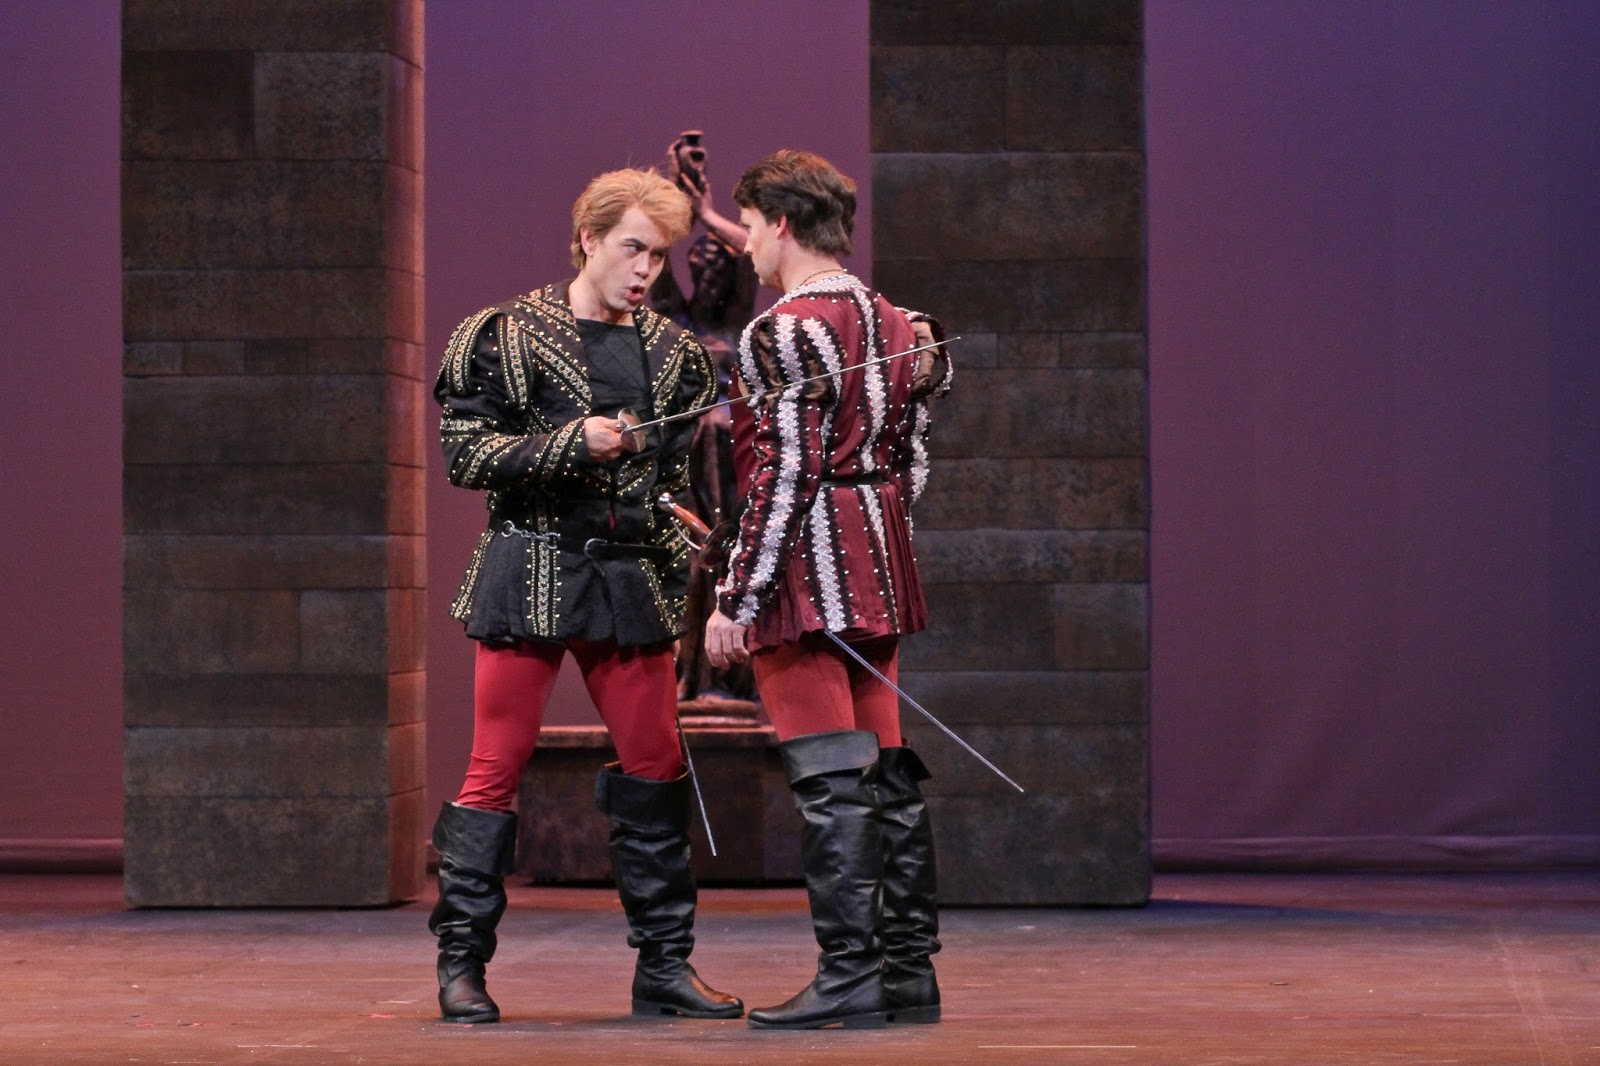 IN PERFORMANCE: Tenors BRIAN ARREOLA as Tybalt (left) and JONATHAN BOYD as Roméo (right) in Opera Carolina's production of Charles Gounod's ROMÉO ET JULIETTE, January 2016 [Photo by Jon Silla, © by Opera Carolina]